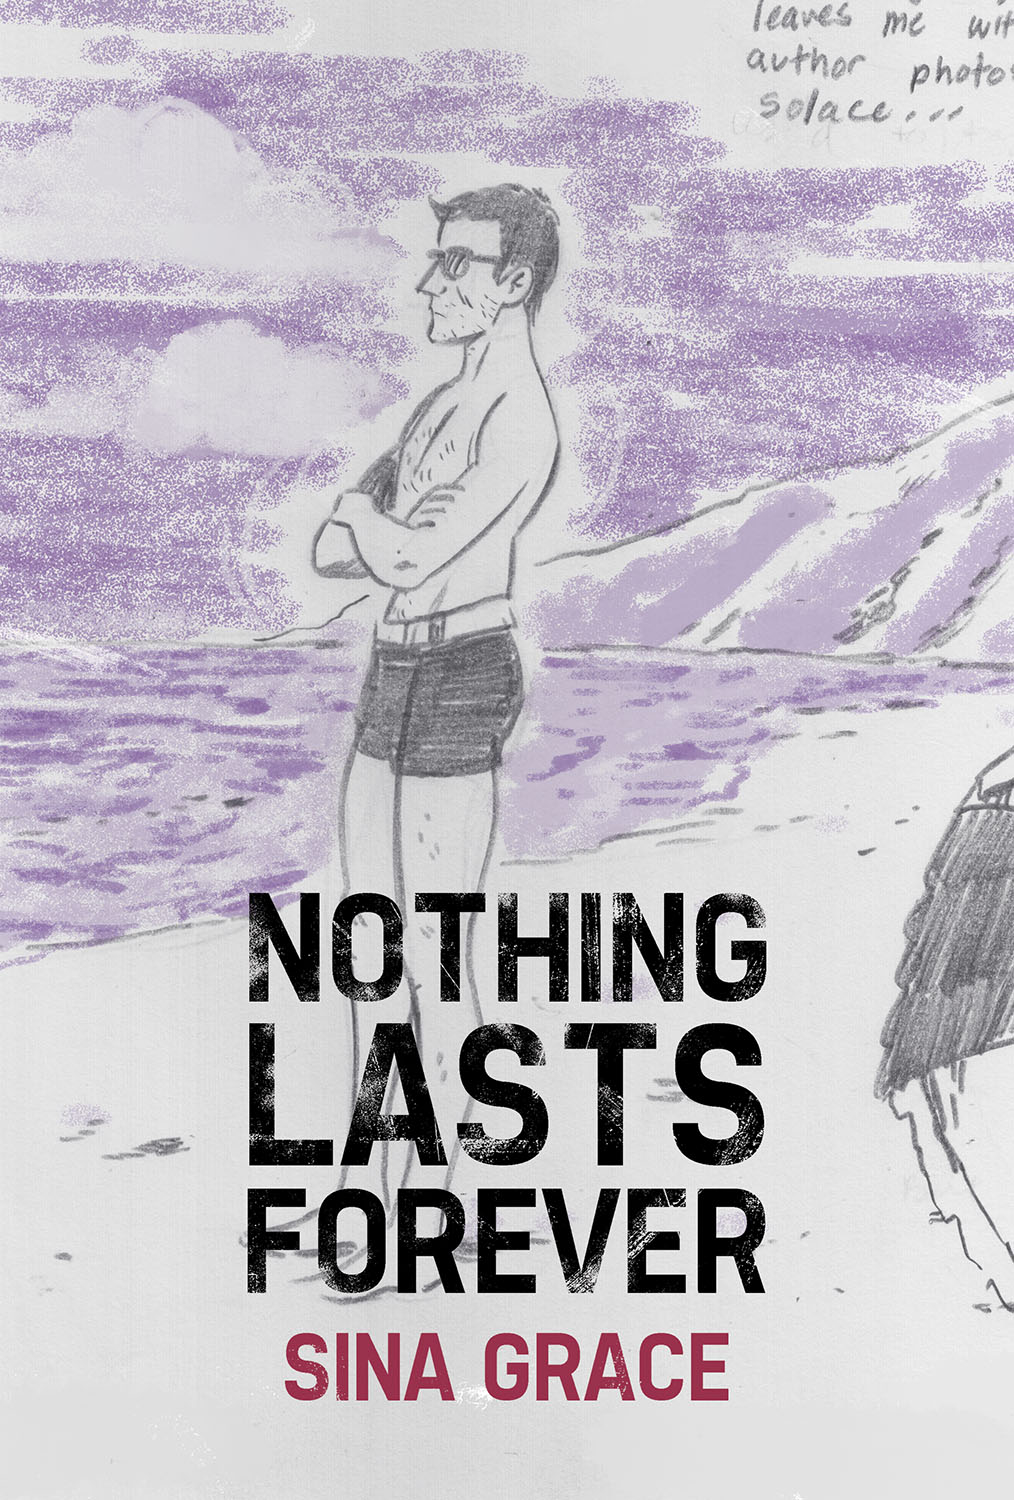 NOTHING LASTS FOREVER TP (MAR170827) (MR)